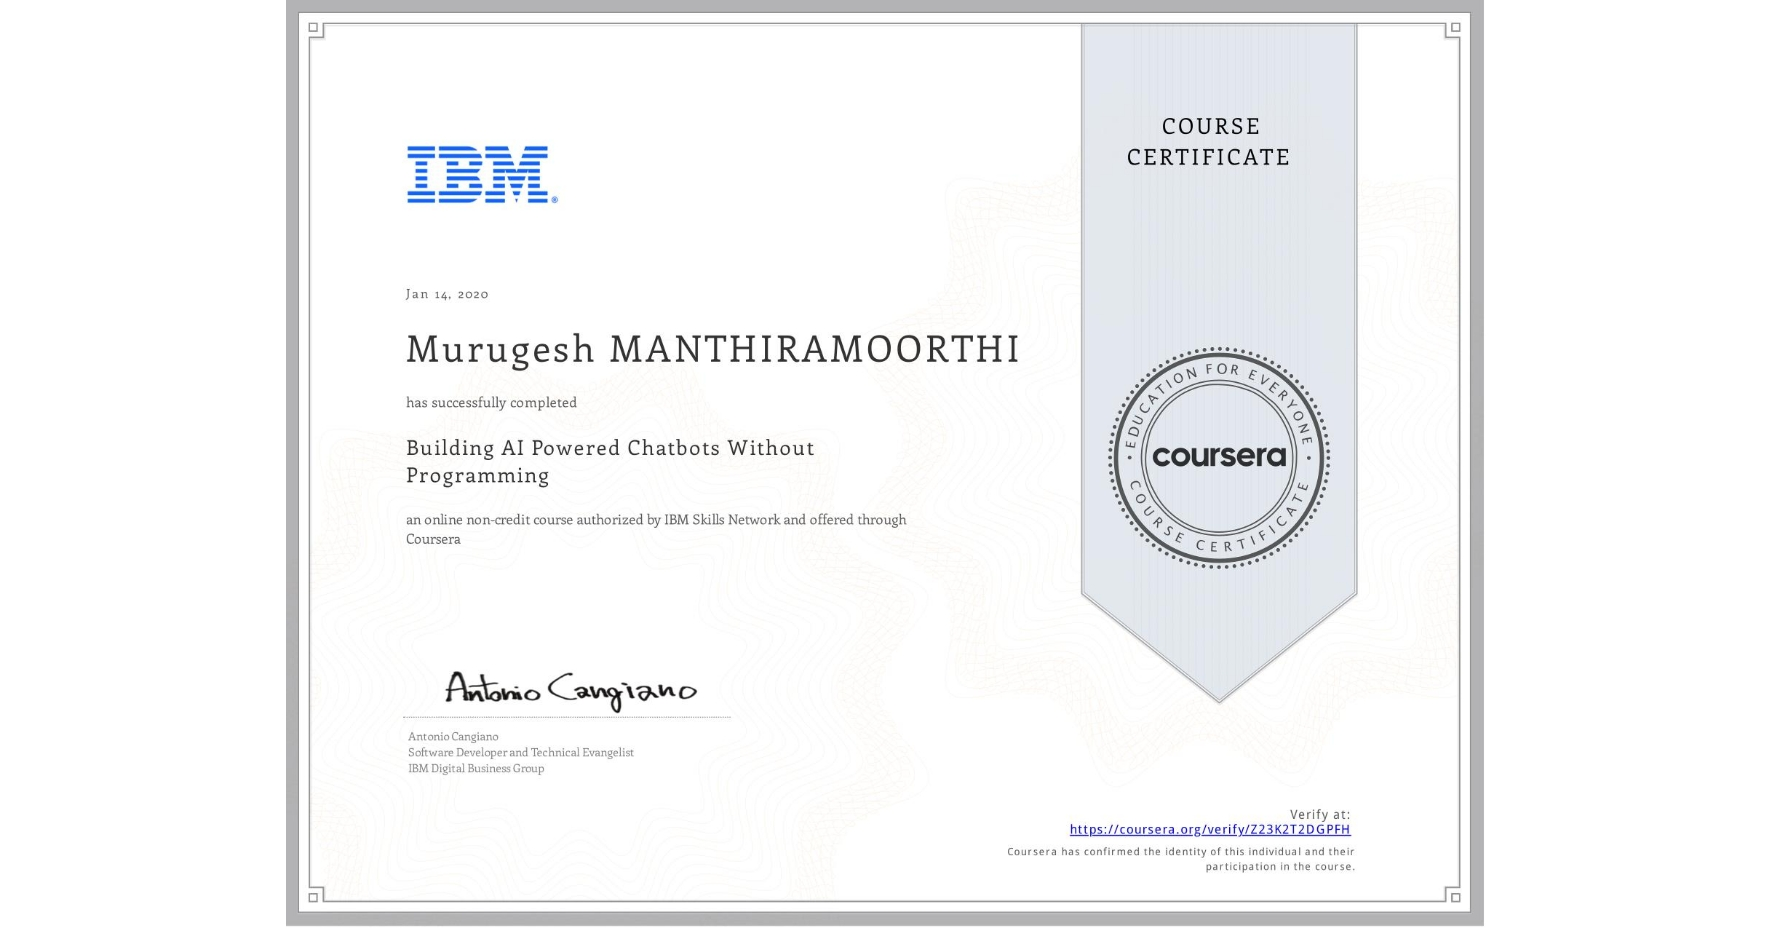 View certificate for Murugesh Manthiramoorthi, Building AI Powered Chatbots Without Programming, an online non-credit course authorized by IBM and offered through Coursera